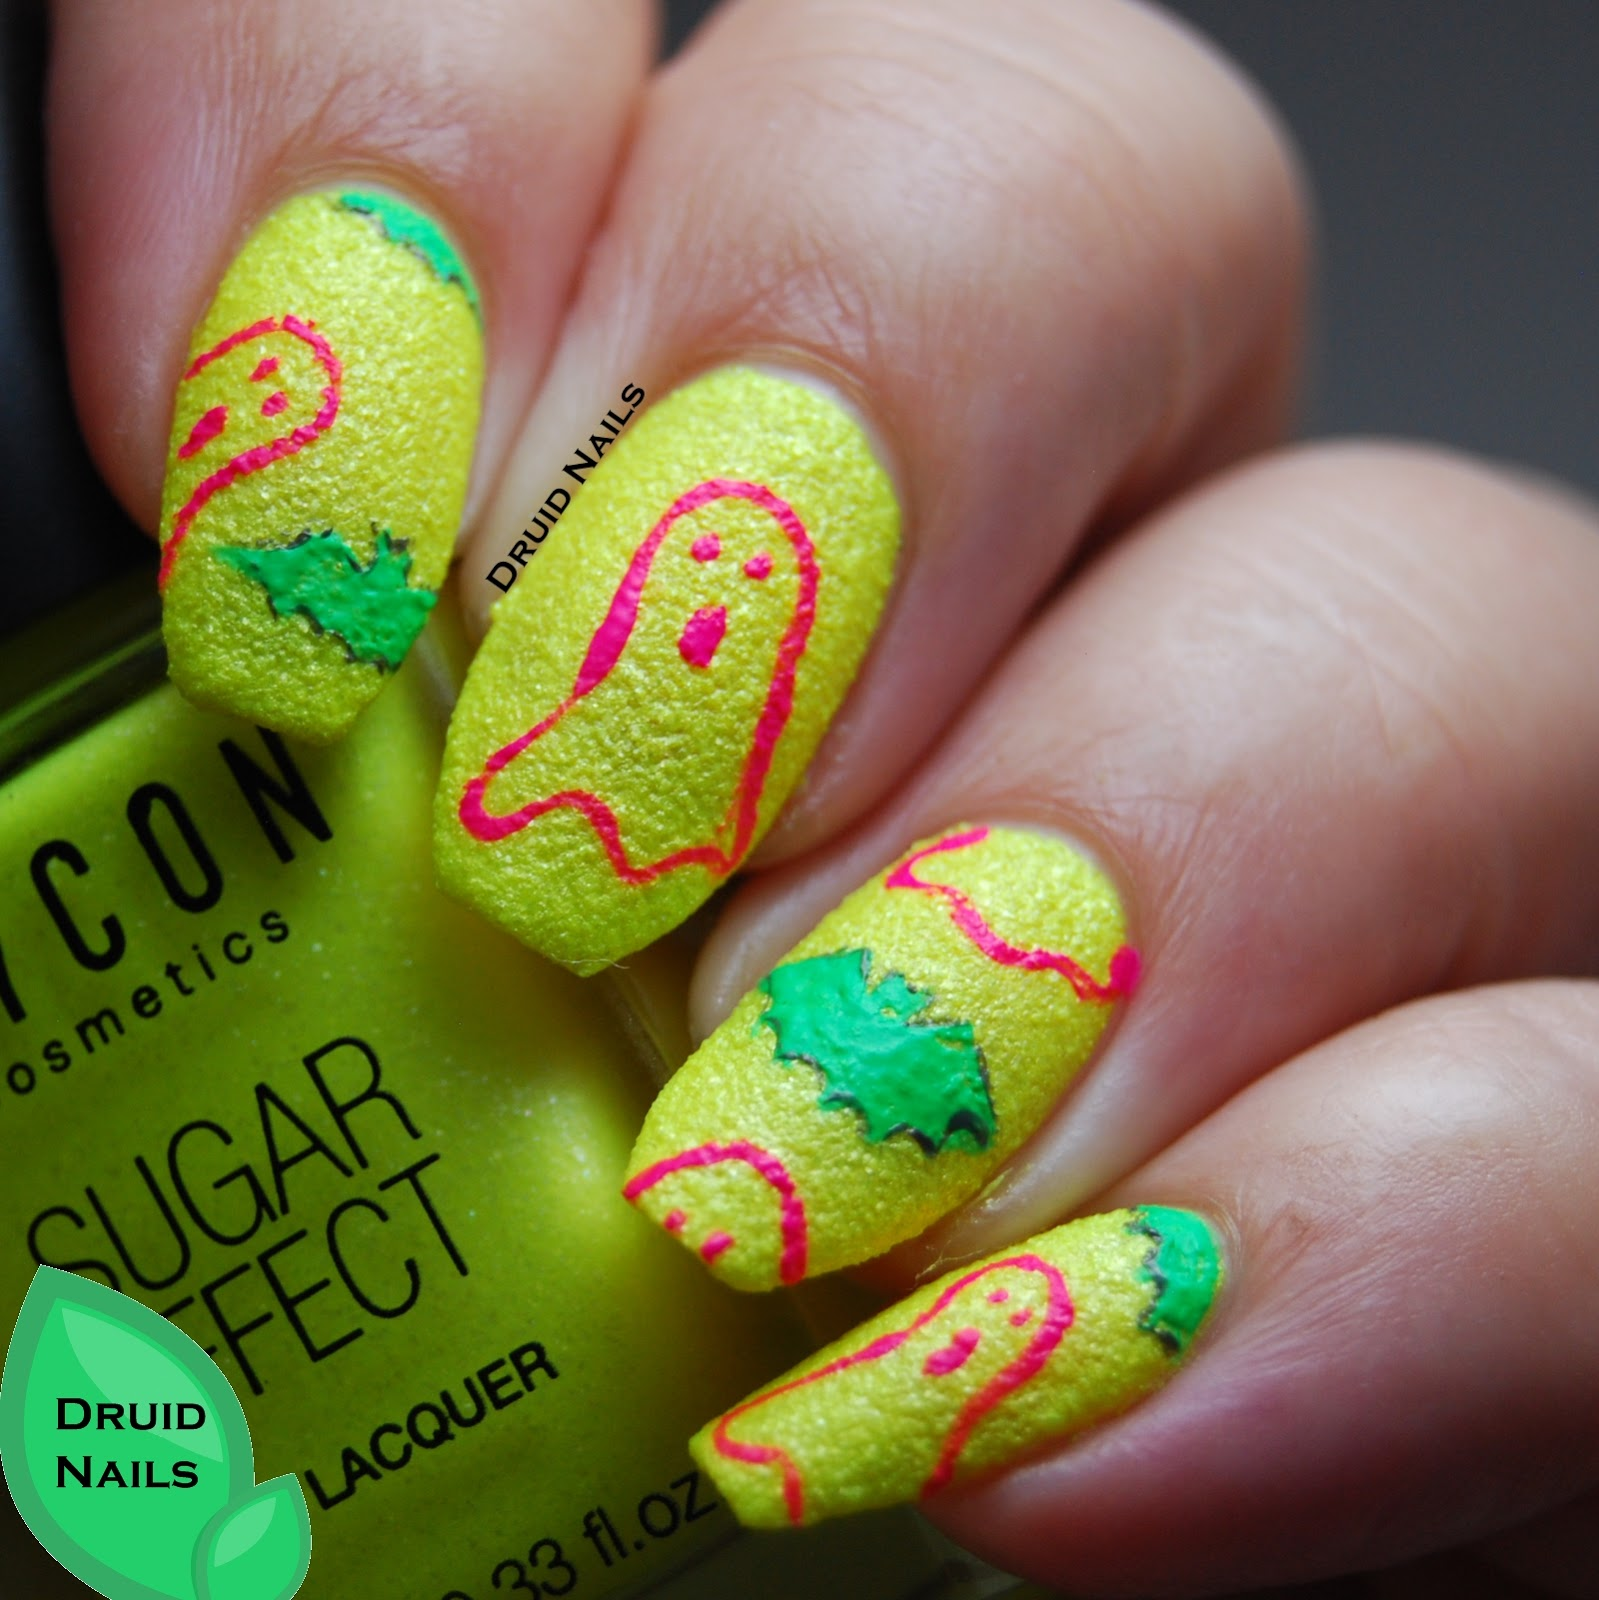 Druid Nails: 26 Great Nail Art Ideas - Halloween in the wrong colours